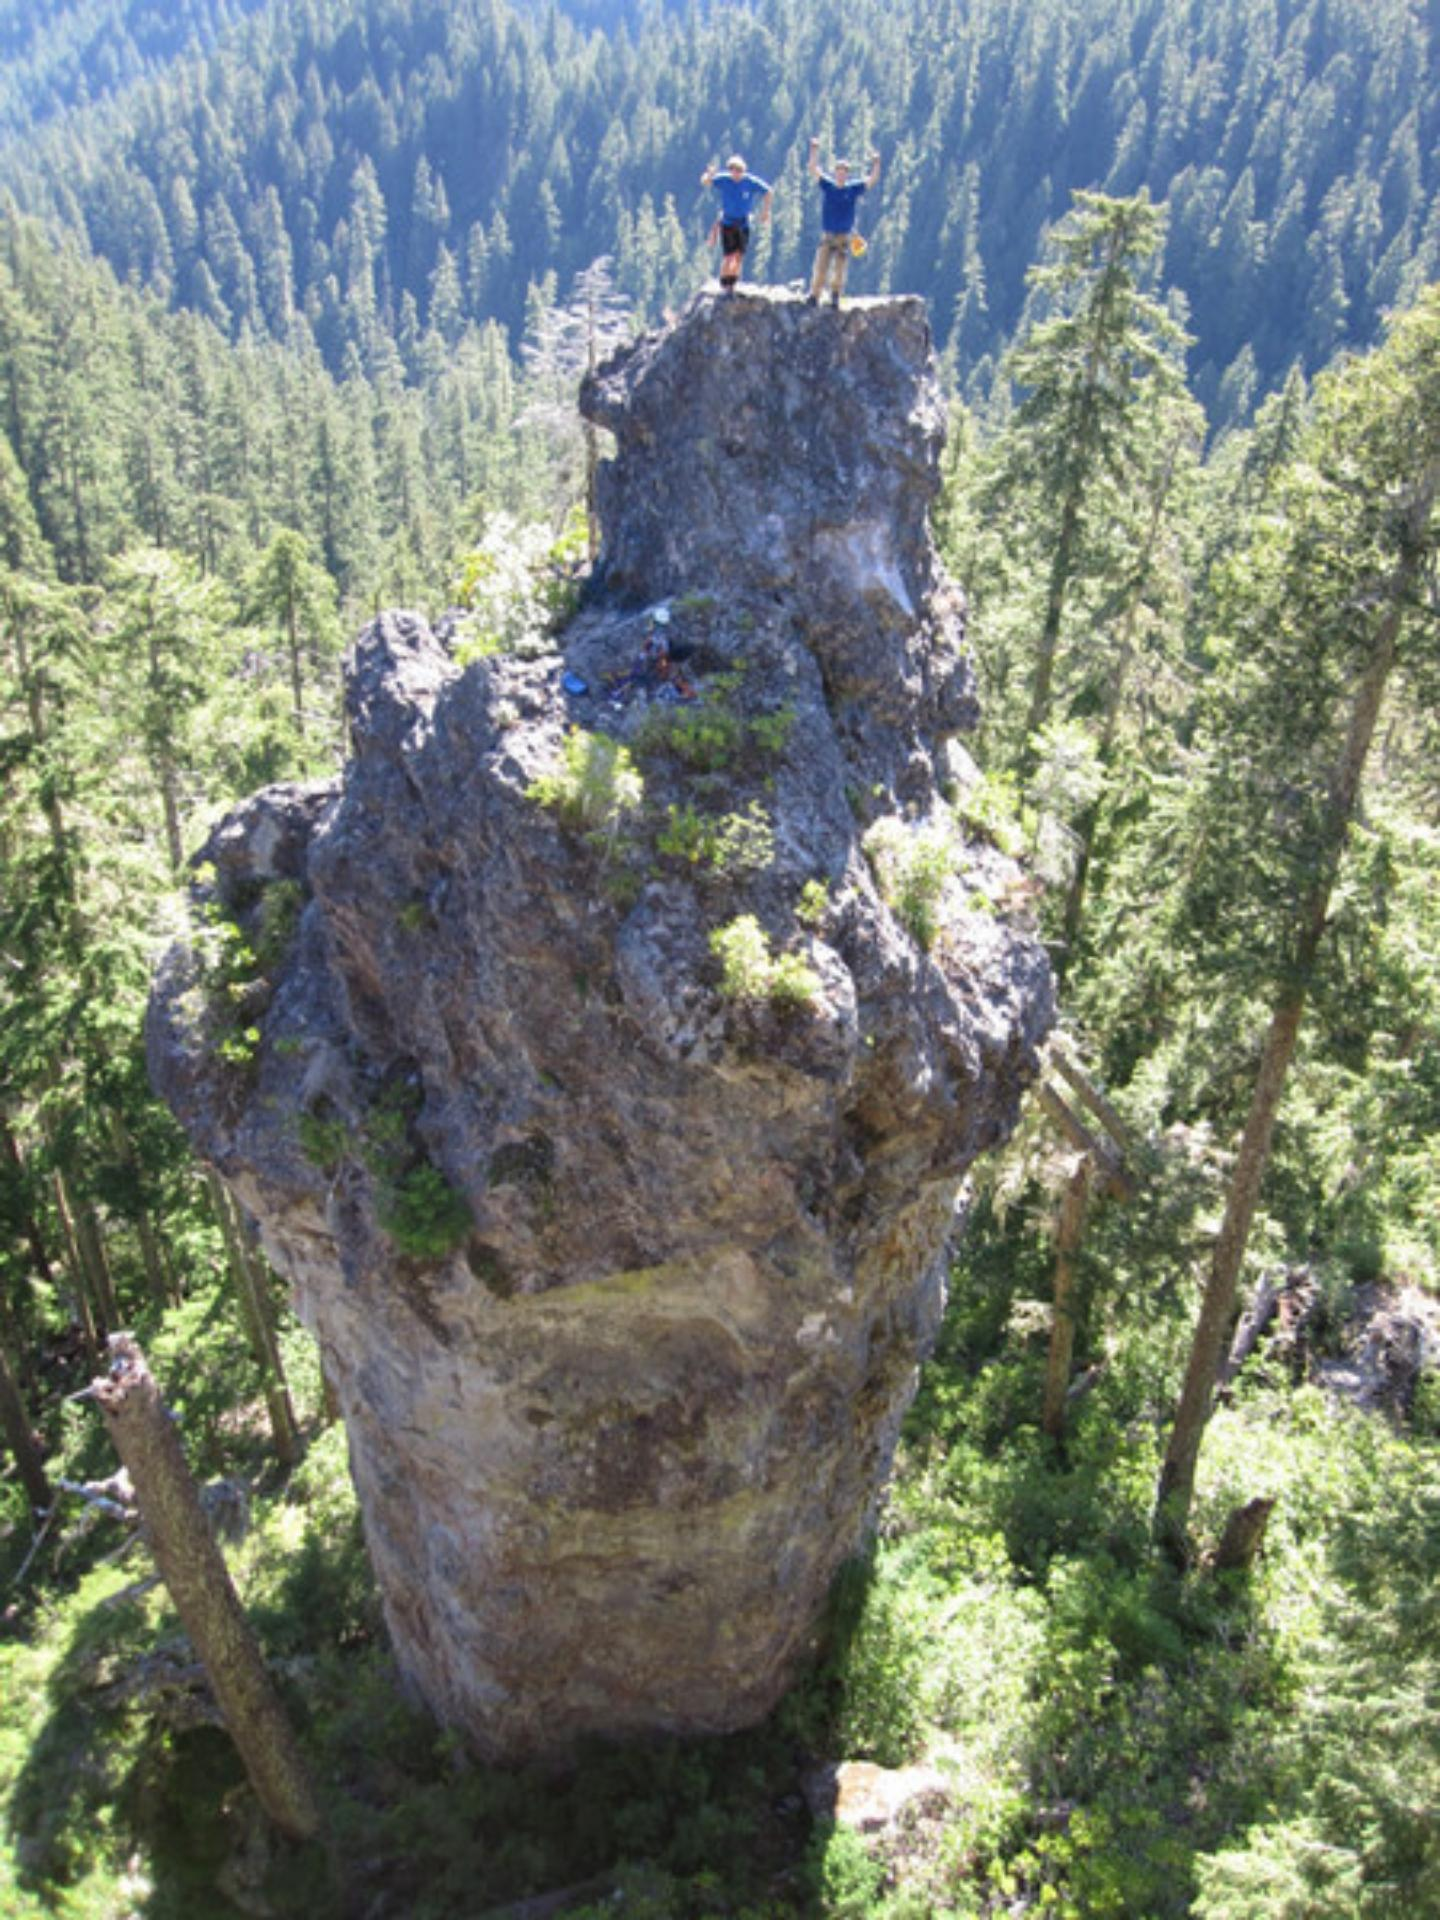 Climbers on Rooster Rock (USDA Forest Service)